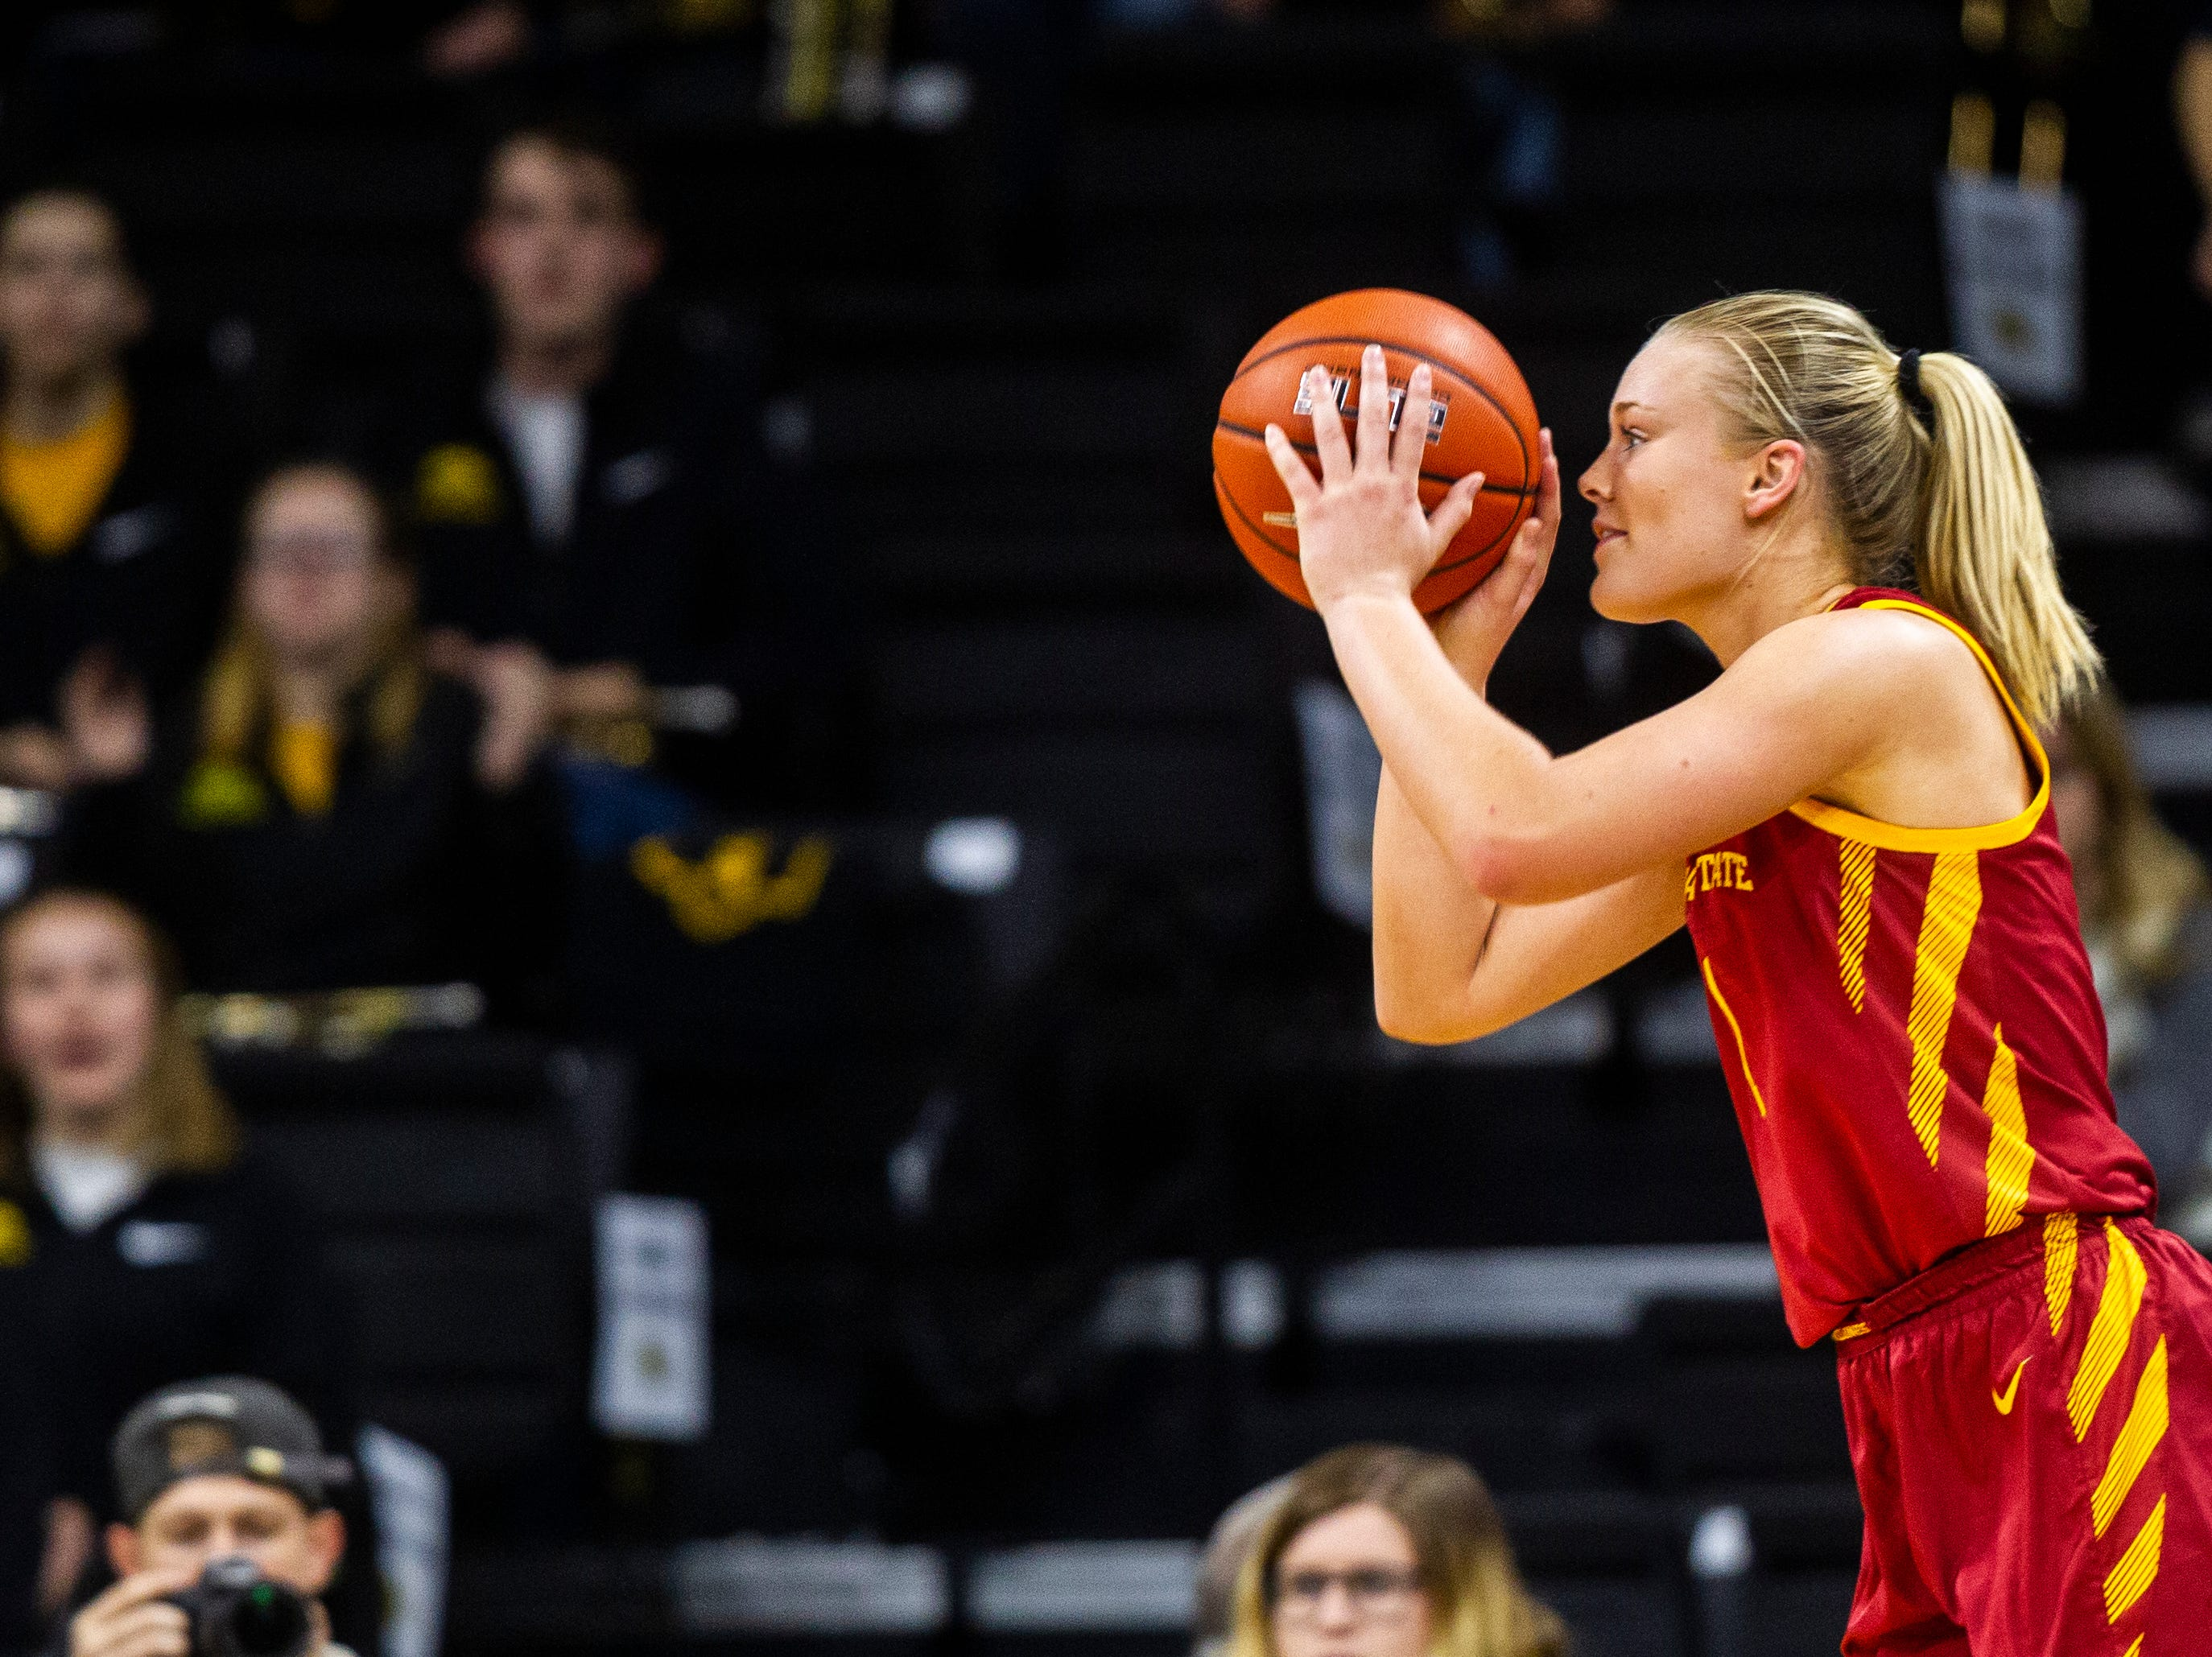 Iowa State forward Madison Wise (1) shoots a 3-point basket during a Cy-Hawk series NCAA women's basketball game on Wednesday, Dec. 5, 2018, at Carver-Hawkeye Arena in Iowa City.